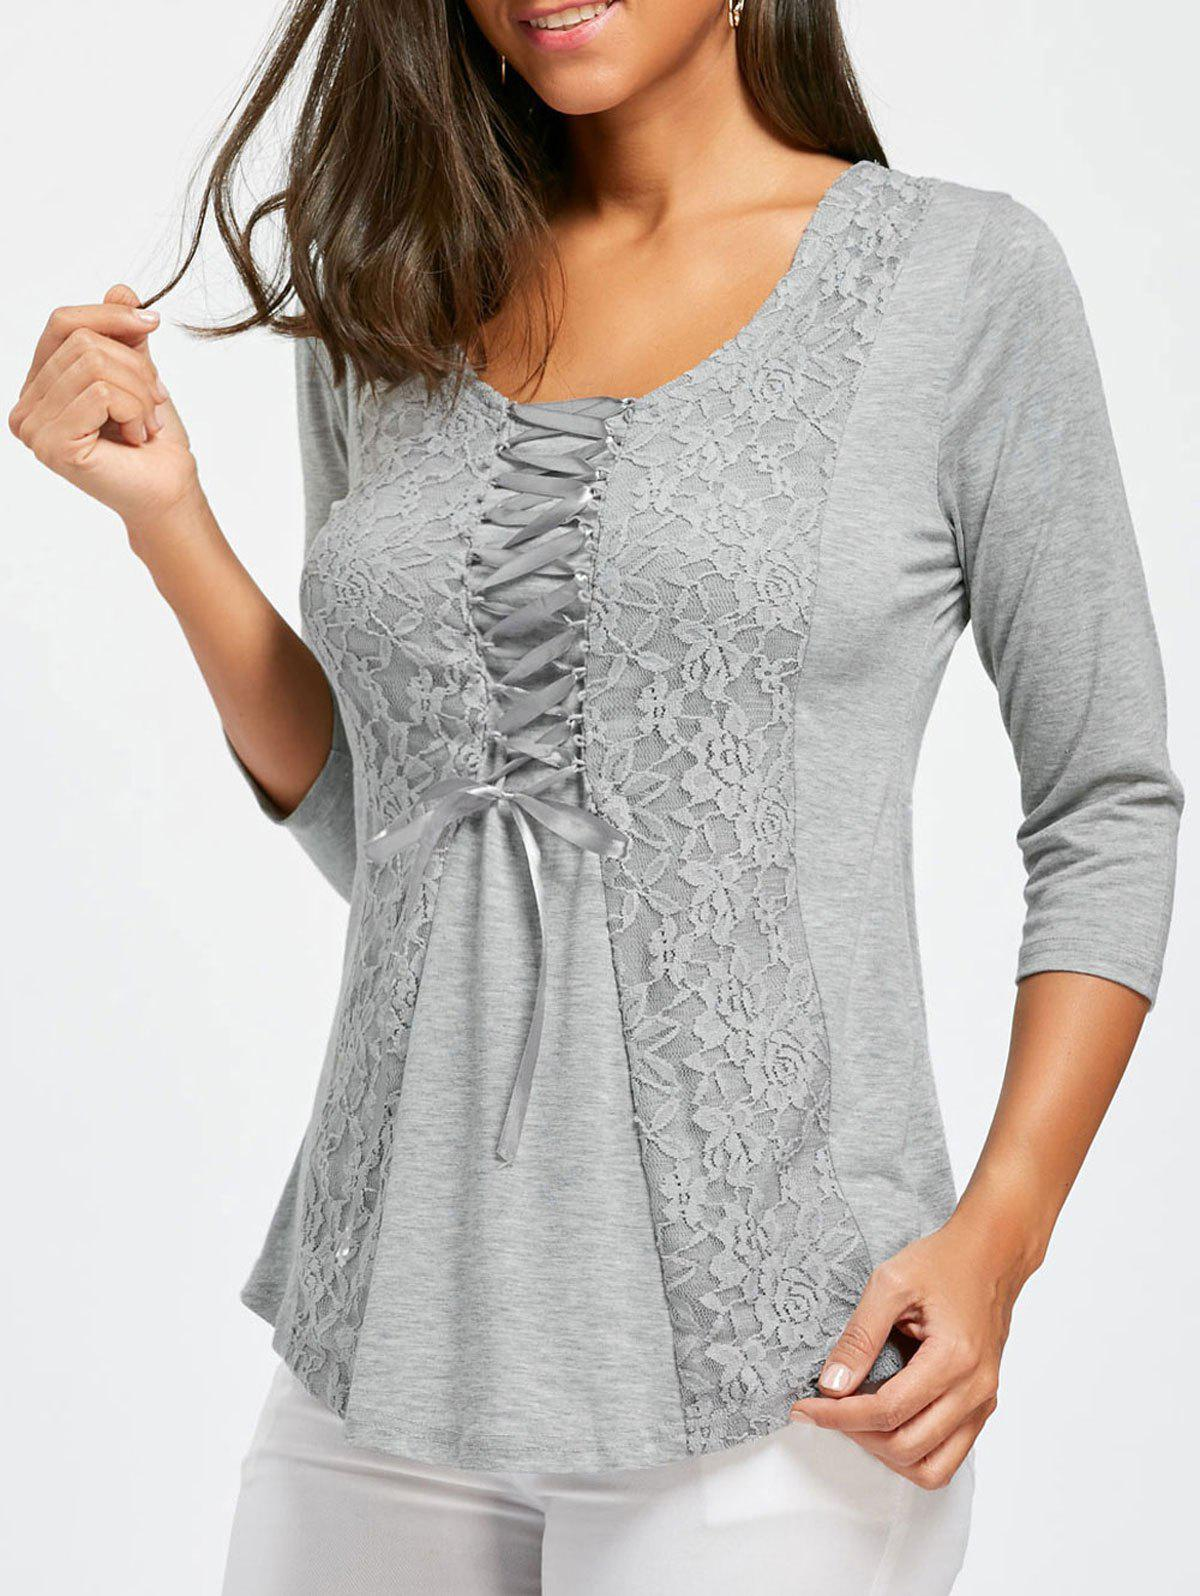 Lace Insert Lace Up TopWOMEN<br><br>Size: L; Color: GRAY; Material: Polyester,Spandex; Shirt Length: Regular; Sleeve Length: Three Quarter; Collar: Round Neck; Style: Fashion; Season: Fall,Spring; Embellishment: Lace; Pattern Type: Solid; Weight: 0.2550kg; Package Contents: 1 x Top;